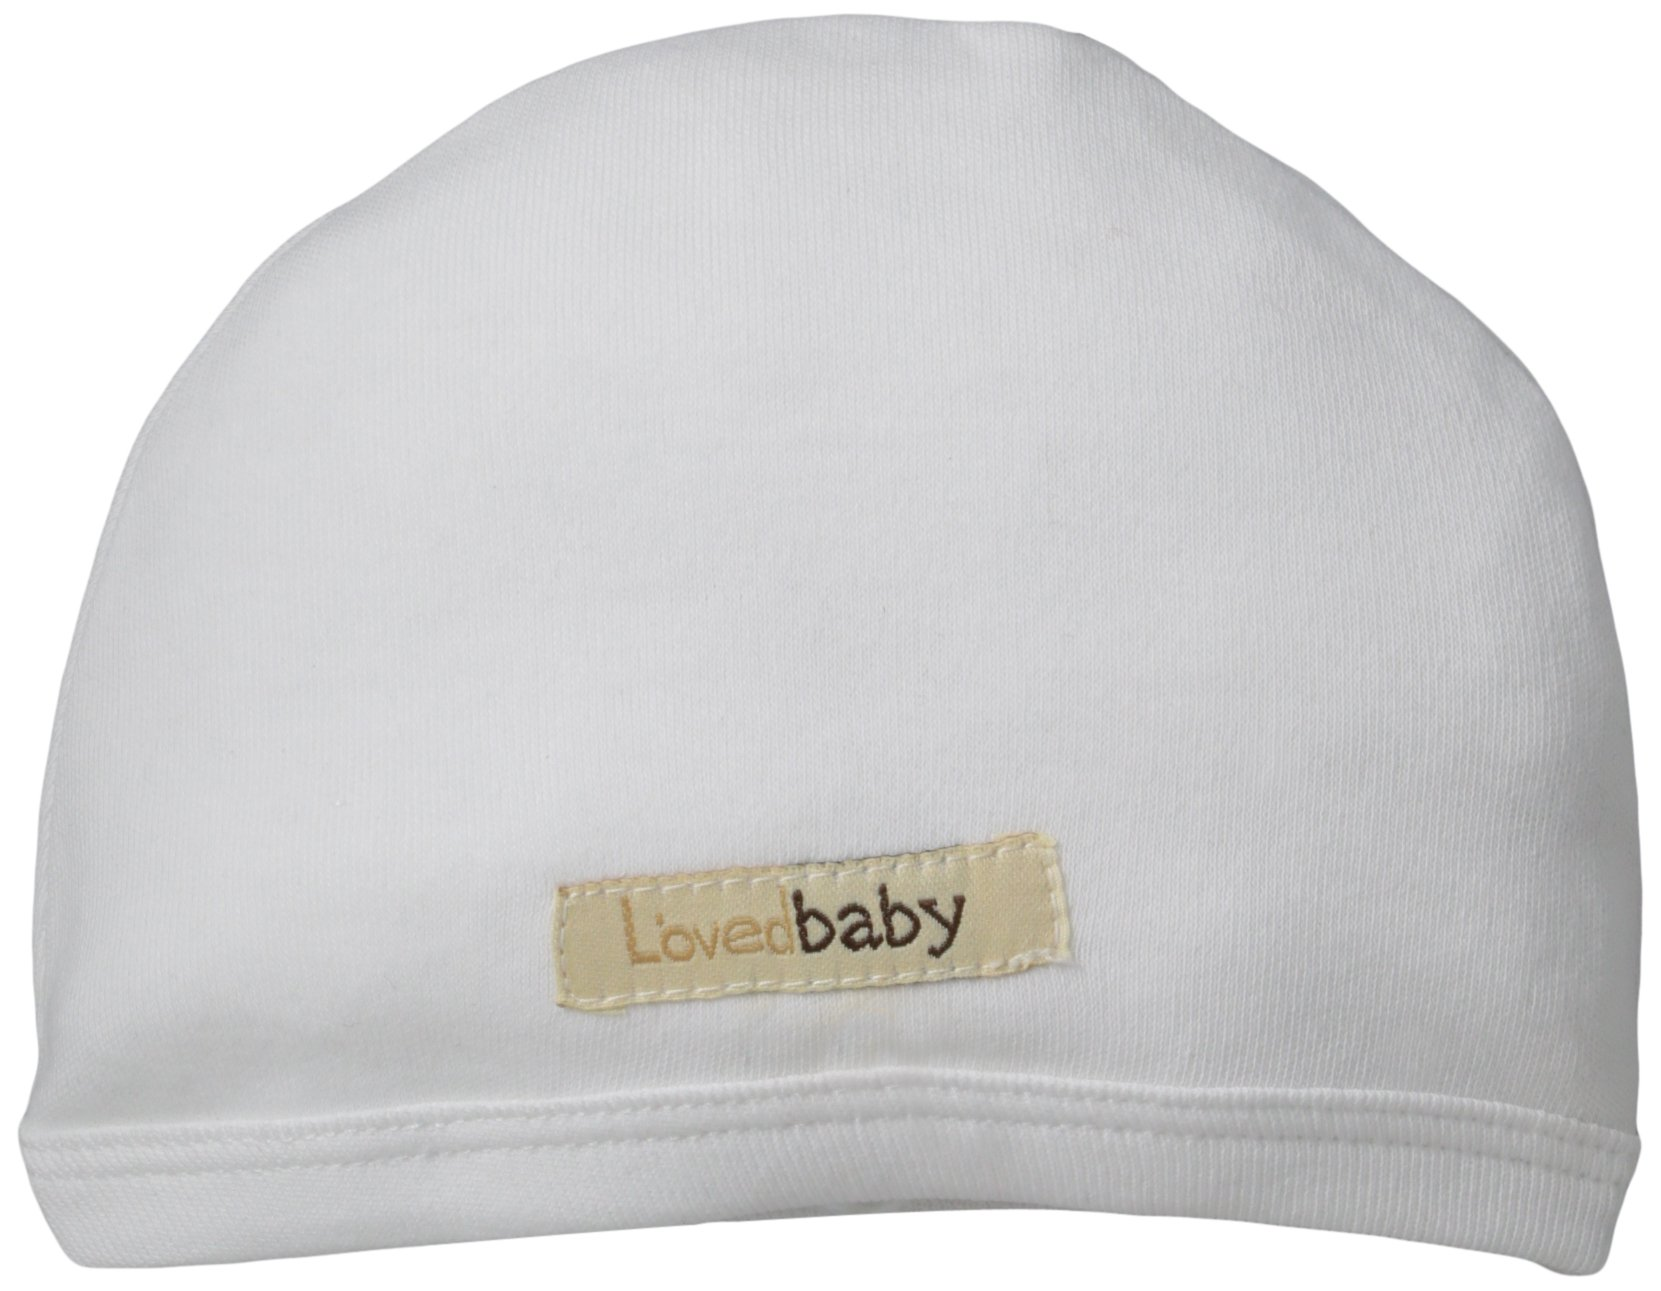 L'ovedbaby Unisex Baby Organic Cute Cap (Baby) - White - 0/3 Months